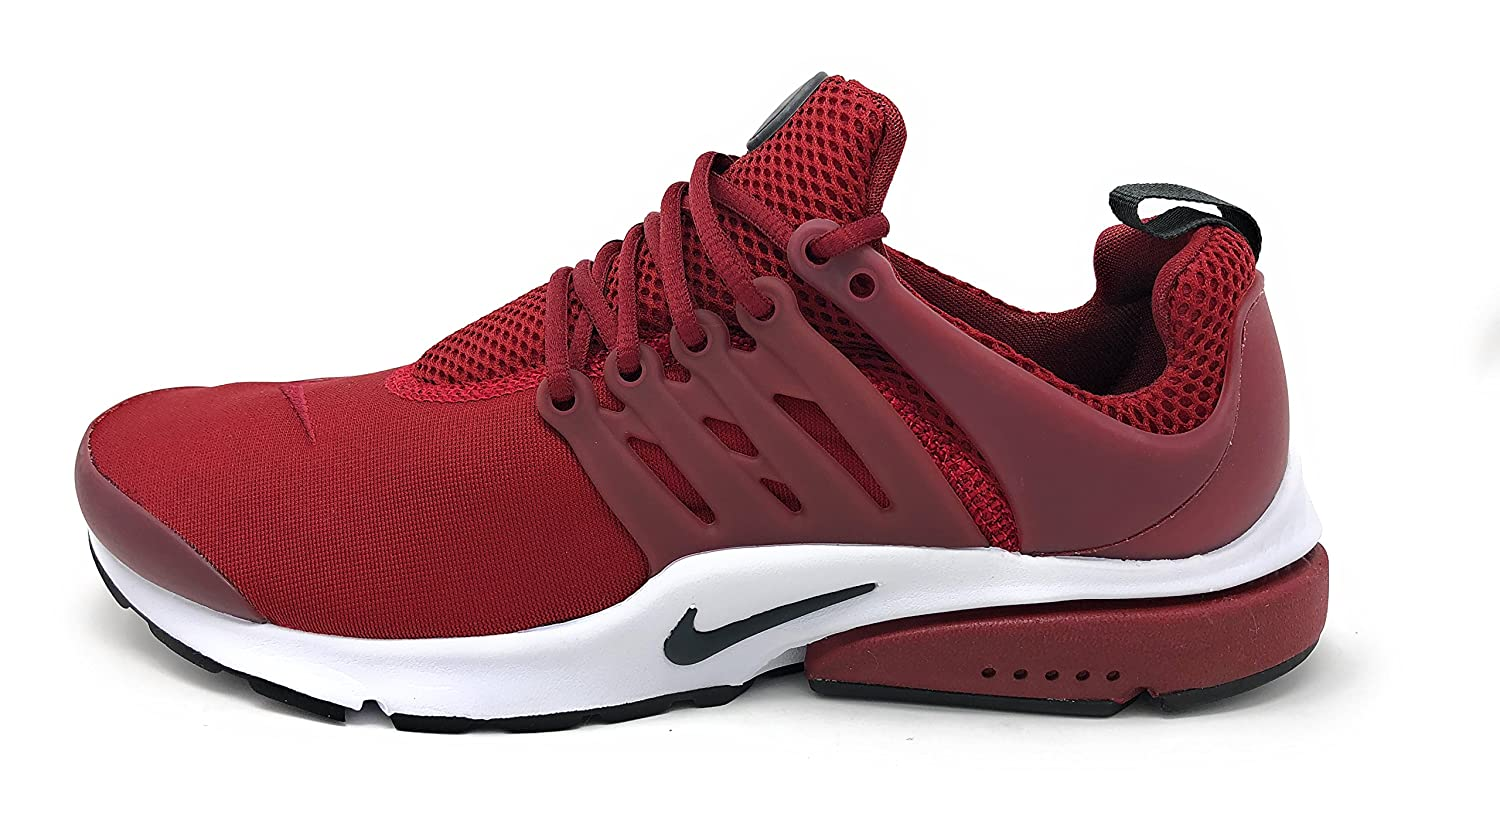 NIKE Men's Air Presto Essential B008EMCYWI 10 M US|Team Red/Anthracite